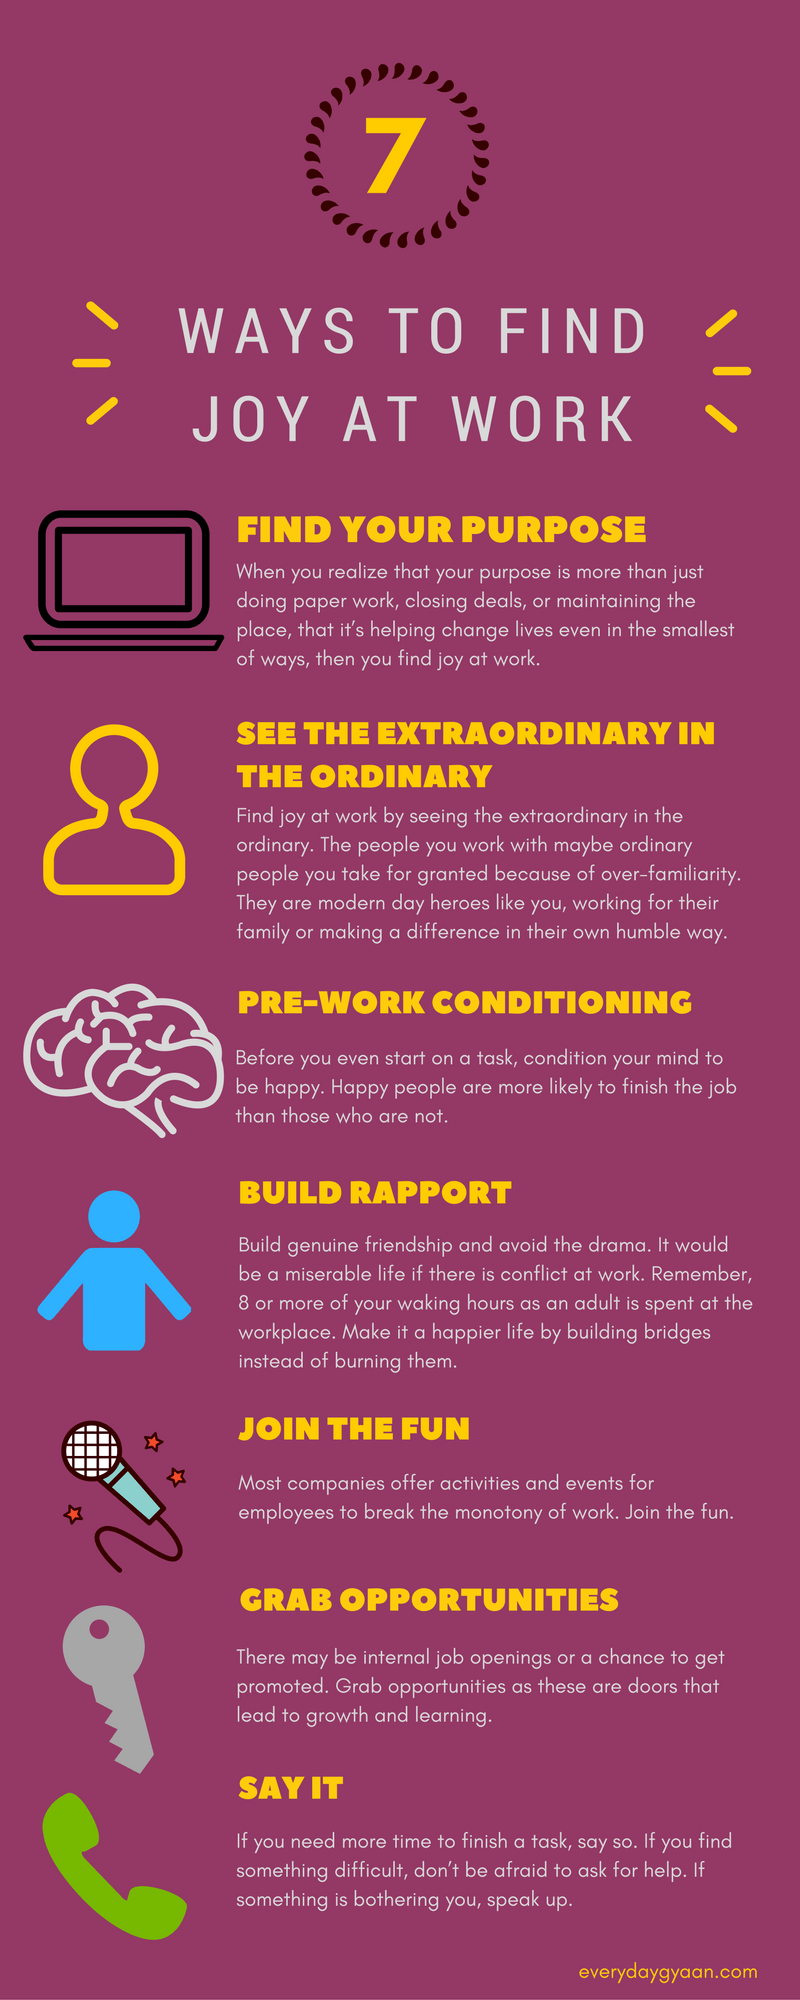 7-ways-to-find-joy-at-work-infographic